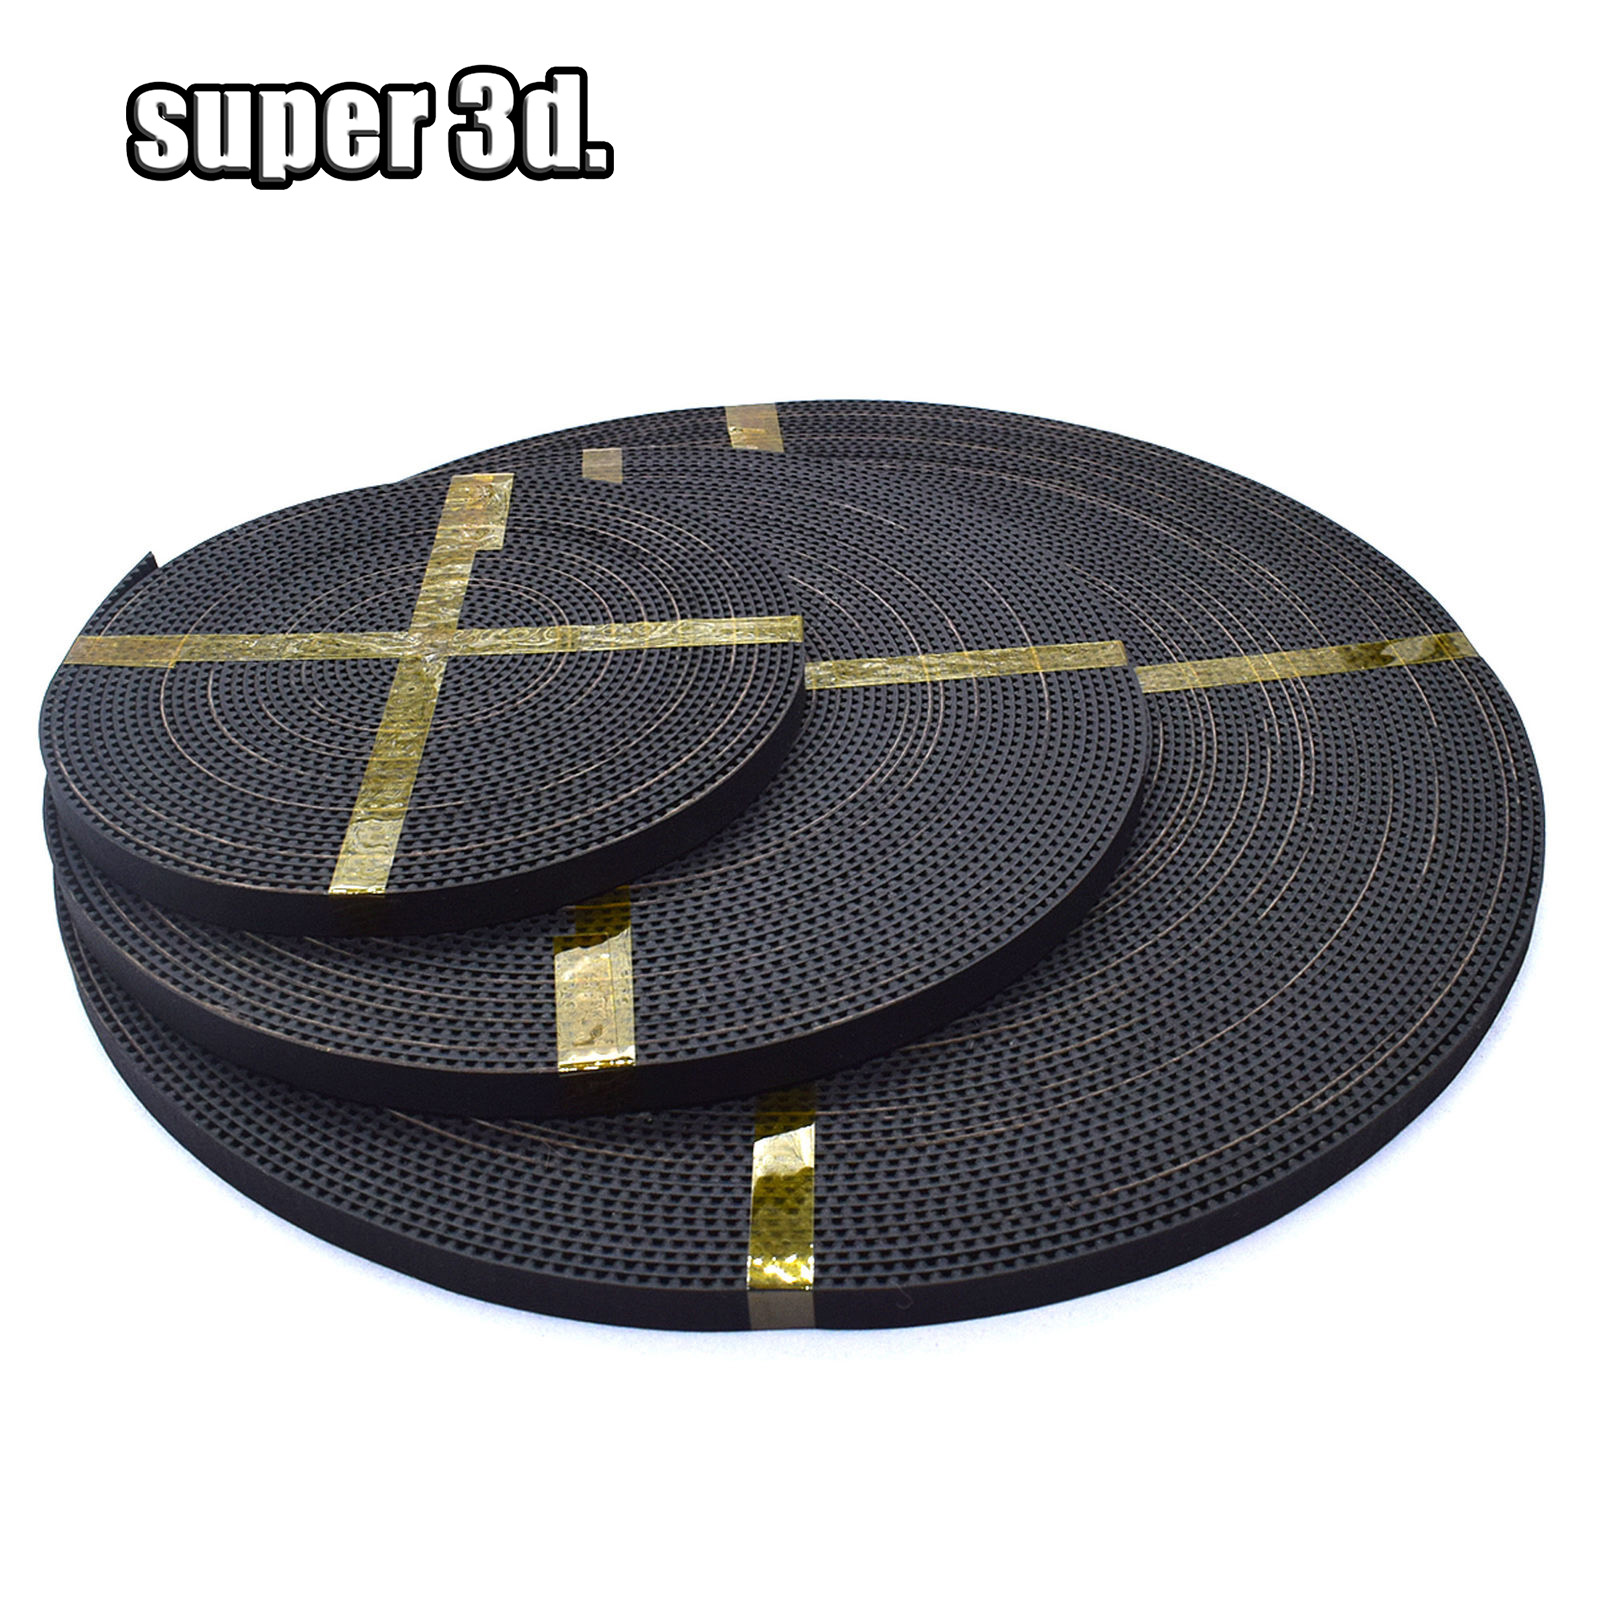 MXL-6mm//10mm//2GT-6mm PU Rubber Timing Belt Open Belt For 3D Printer Reprap x1M